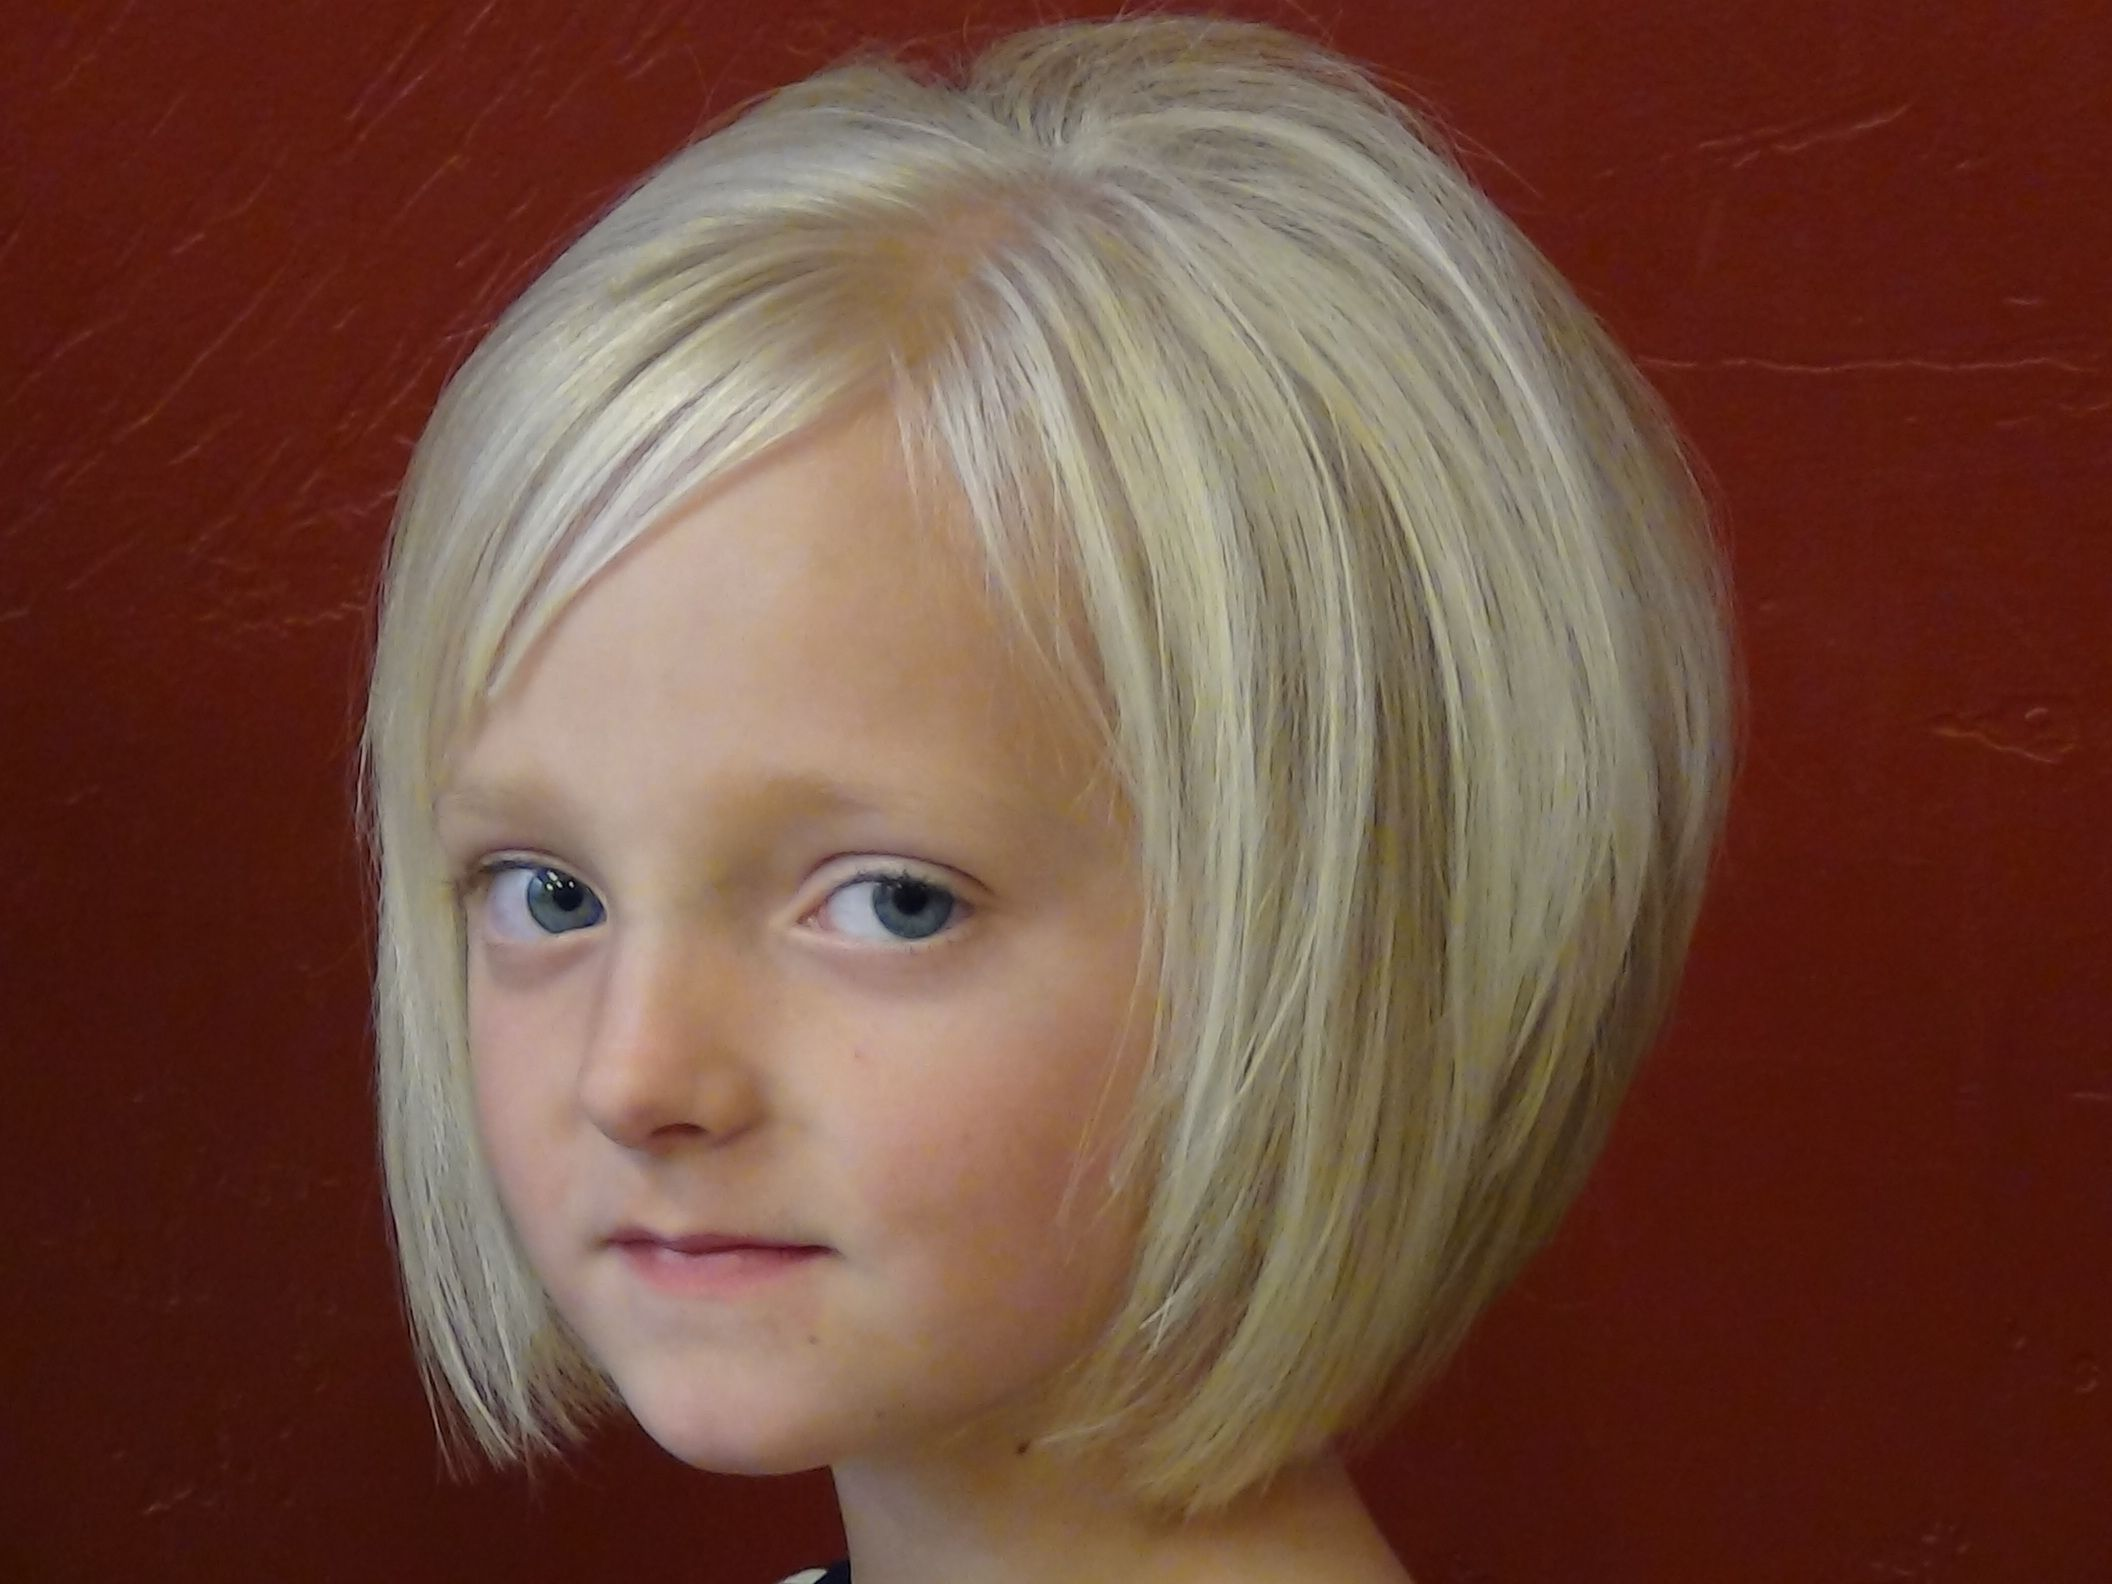 Meches Bambini ~ Little girls haircuts pictures. i wish em would let me cut her